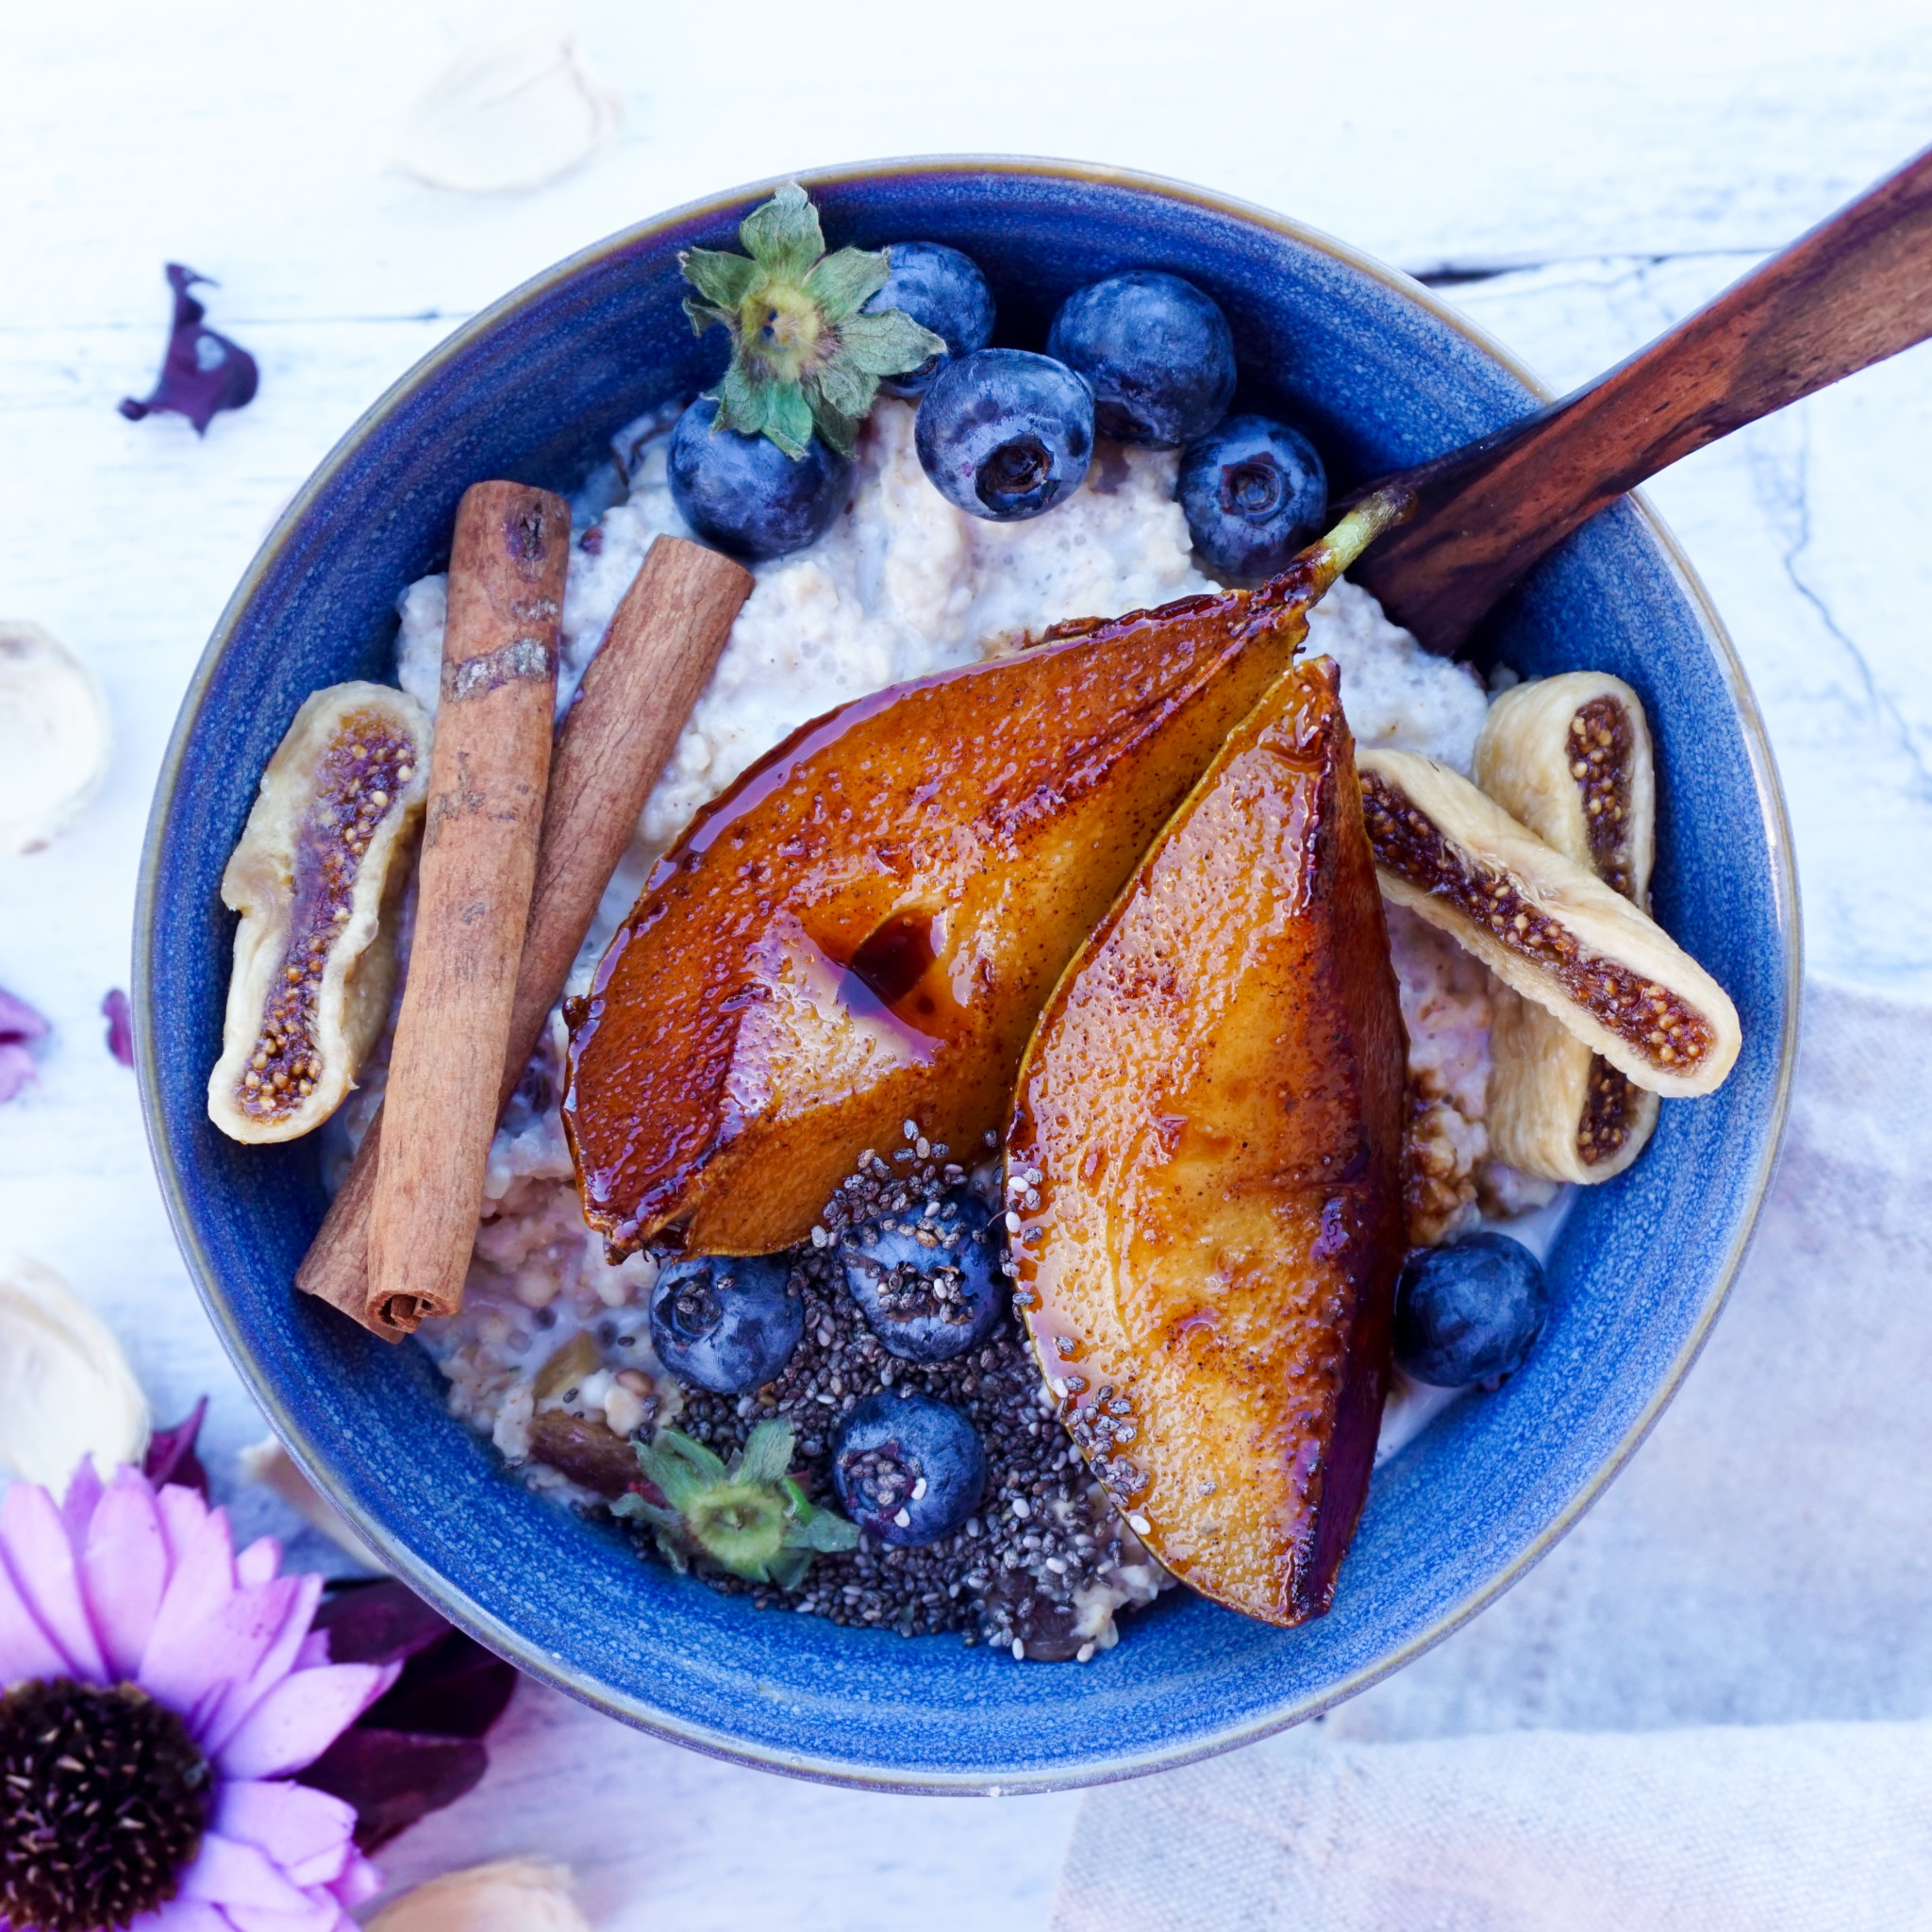 Winter Oatmeal with figs, pears, cinnamon sticks, and blueberries